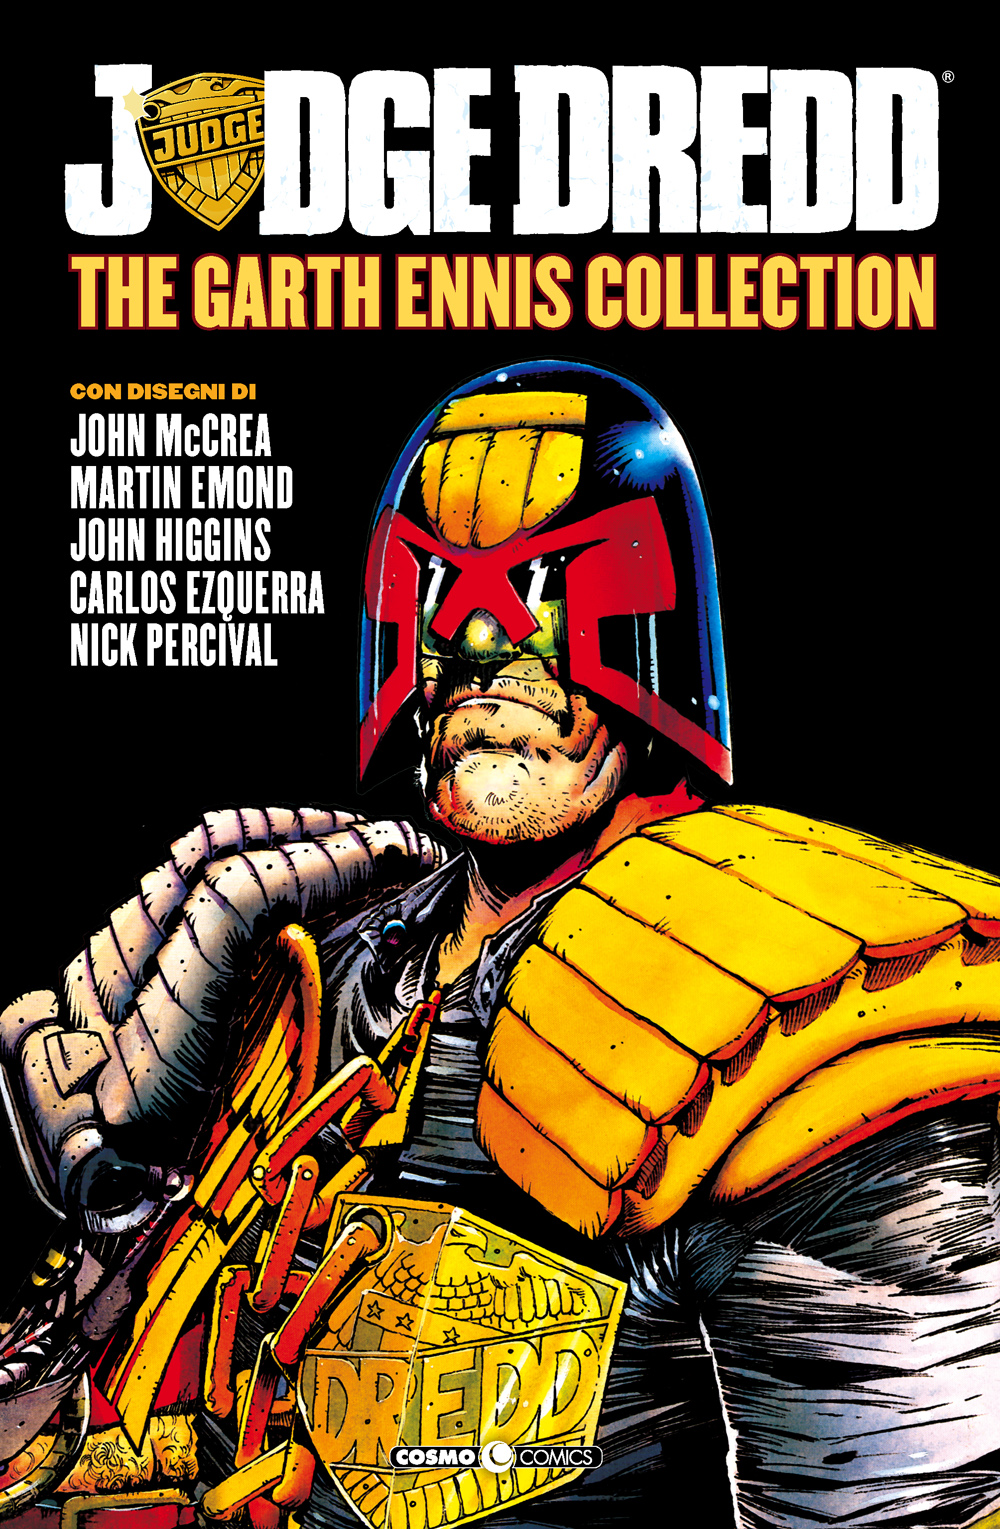 JUDGE DREDD: THE GARTH ENNIS COLLECTION, VOL. 6